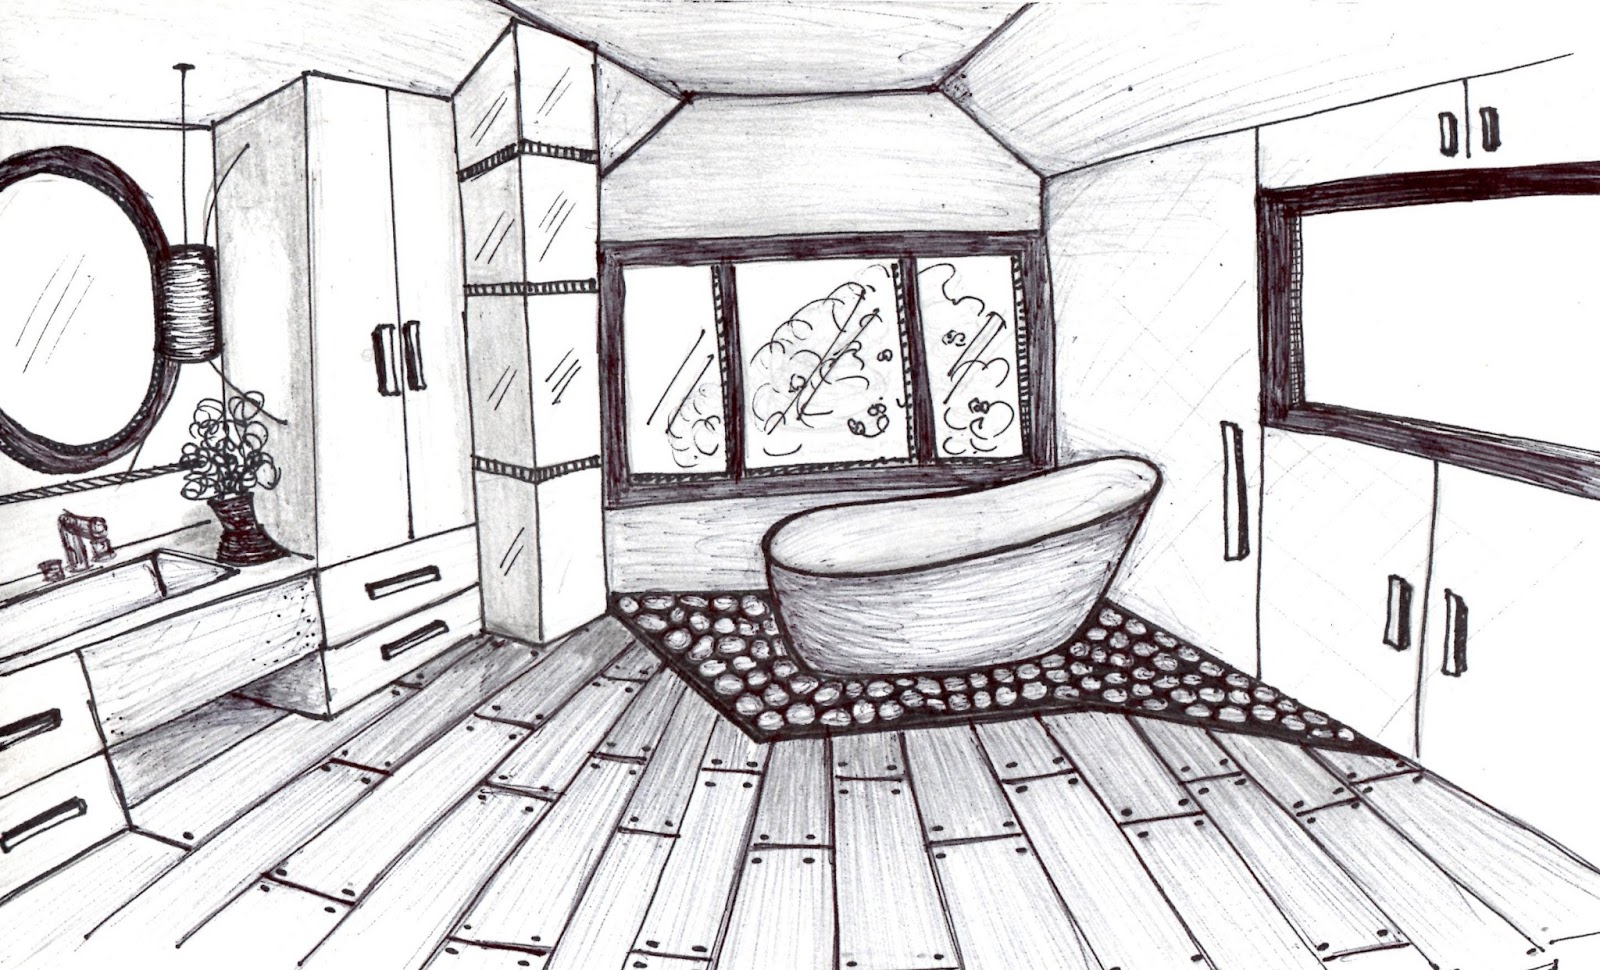 master bathroom sketch - Interior Design Sketches